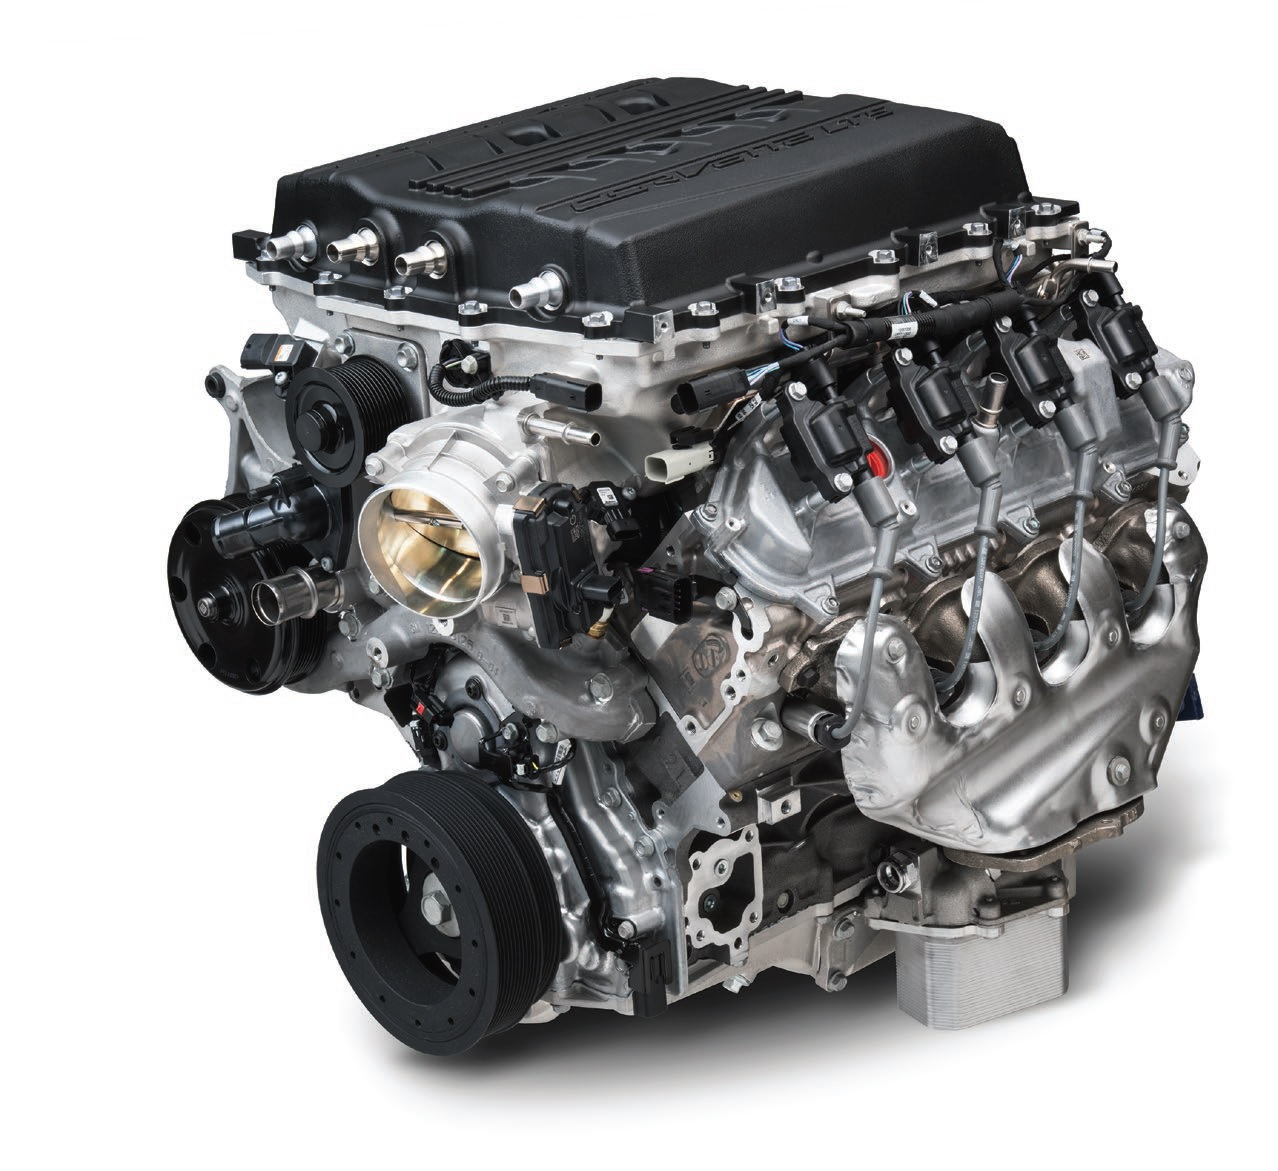 The New Lt1 V8 5th Generation Gm Small Block That Will: GM Performance Motor